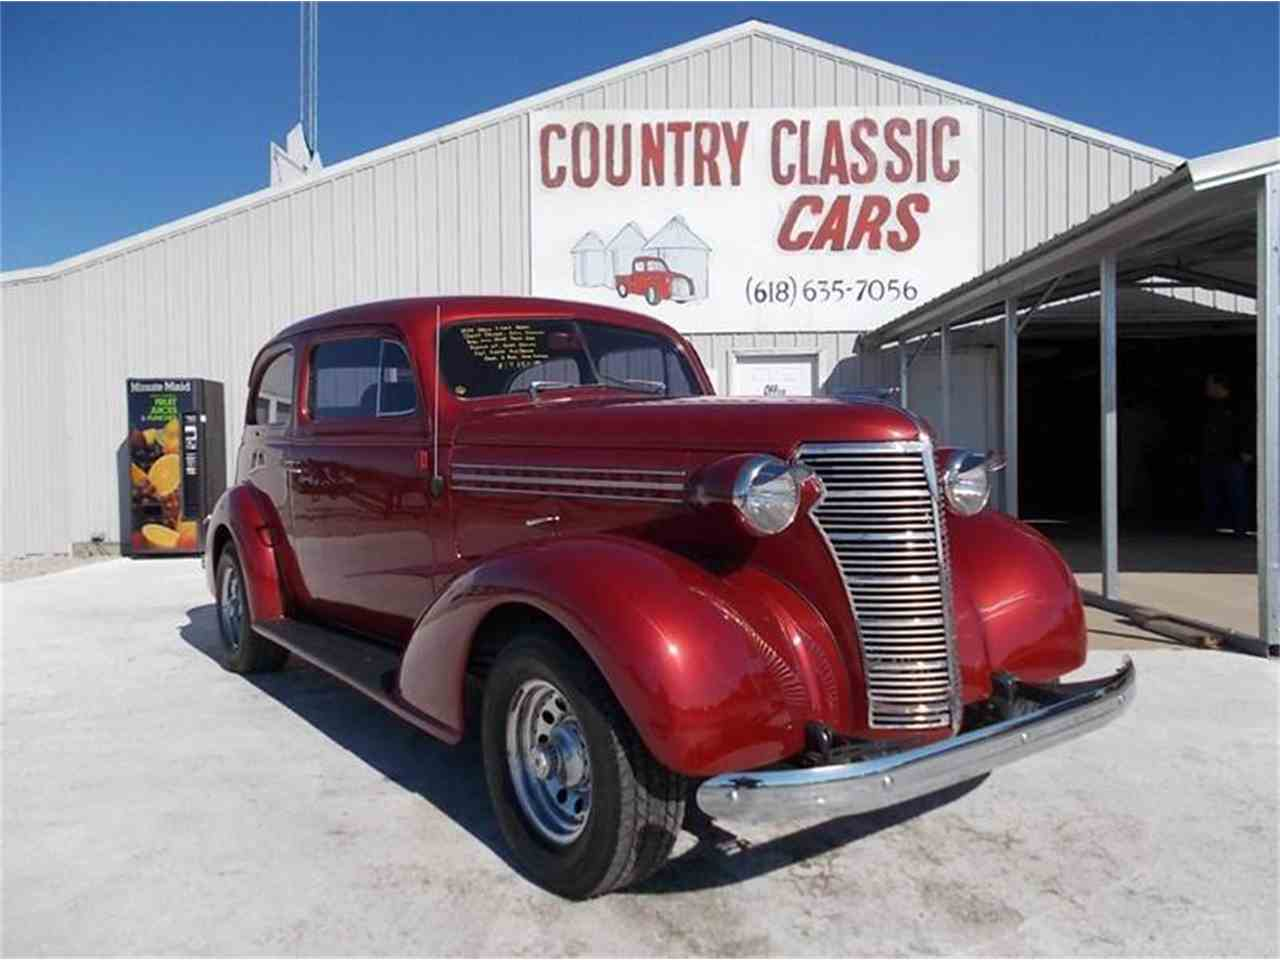 Louisville Car Dealers >> 1938 Chevrolet Sedan for Sale | ClassicCars.com | CC-966780